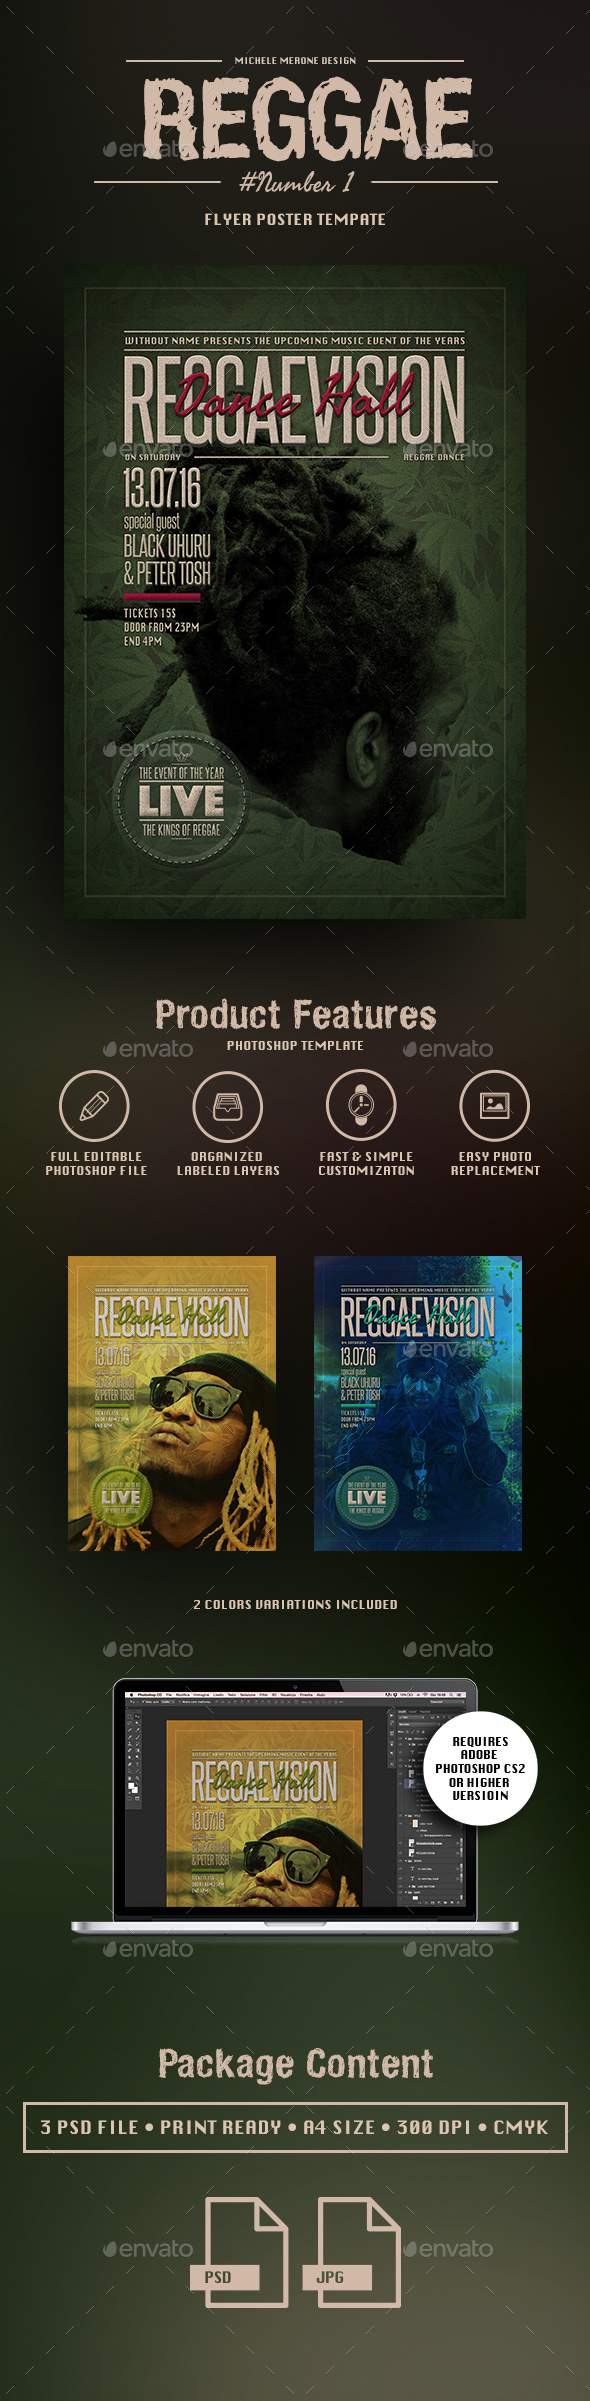 Reggae Flyer/Poster Pack Numb. 1 - Flyers Print Templates